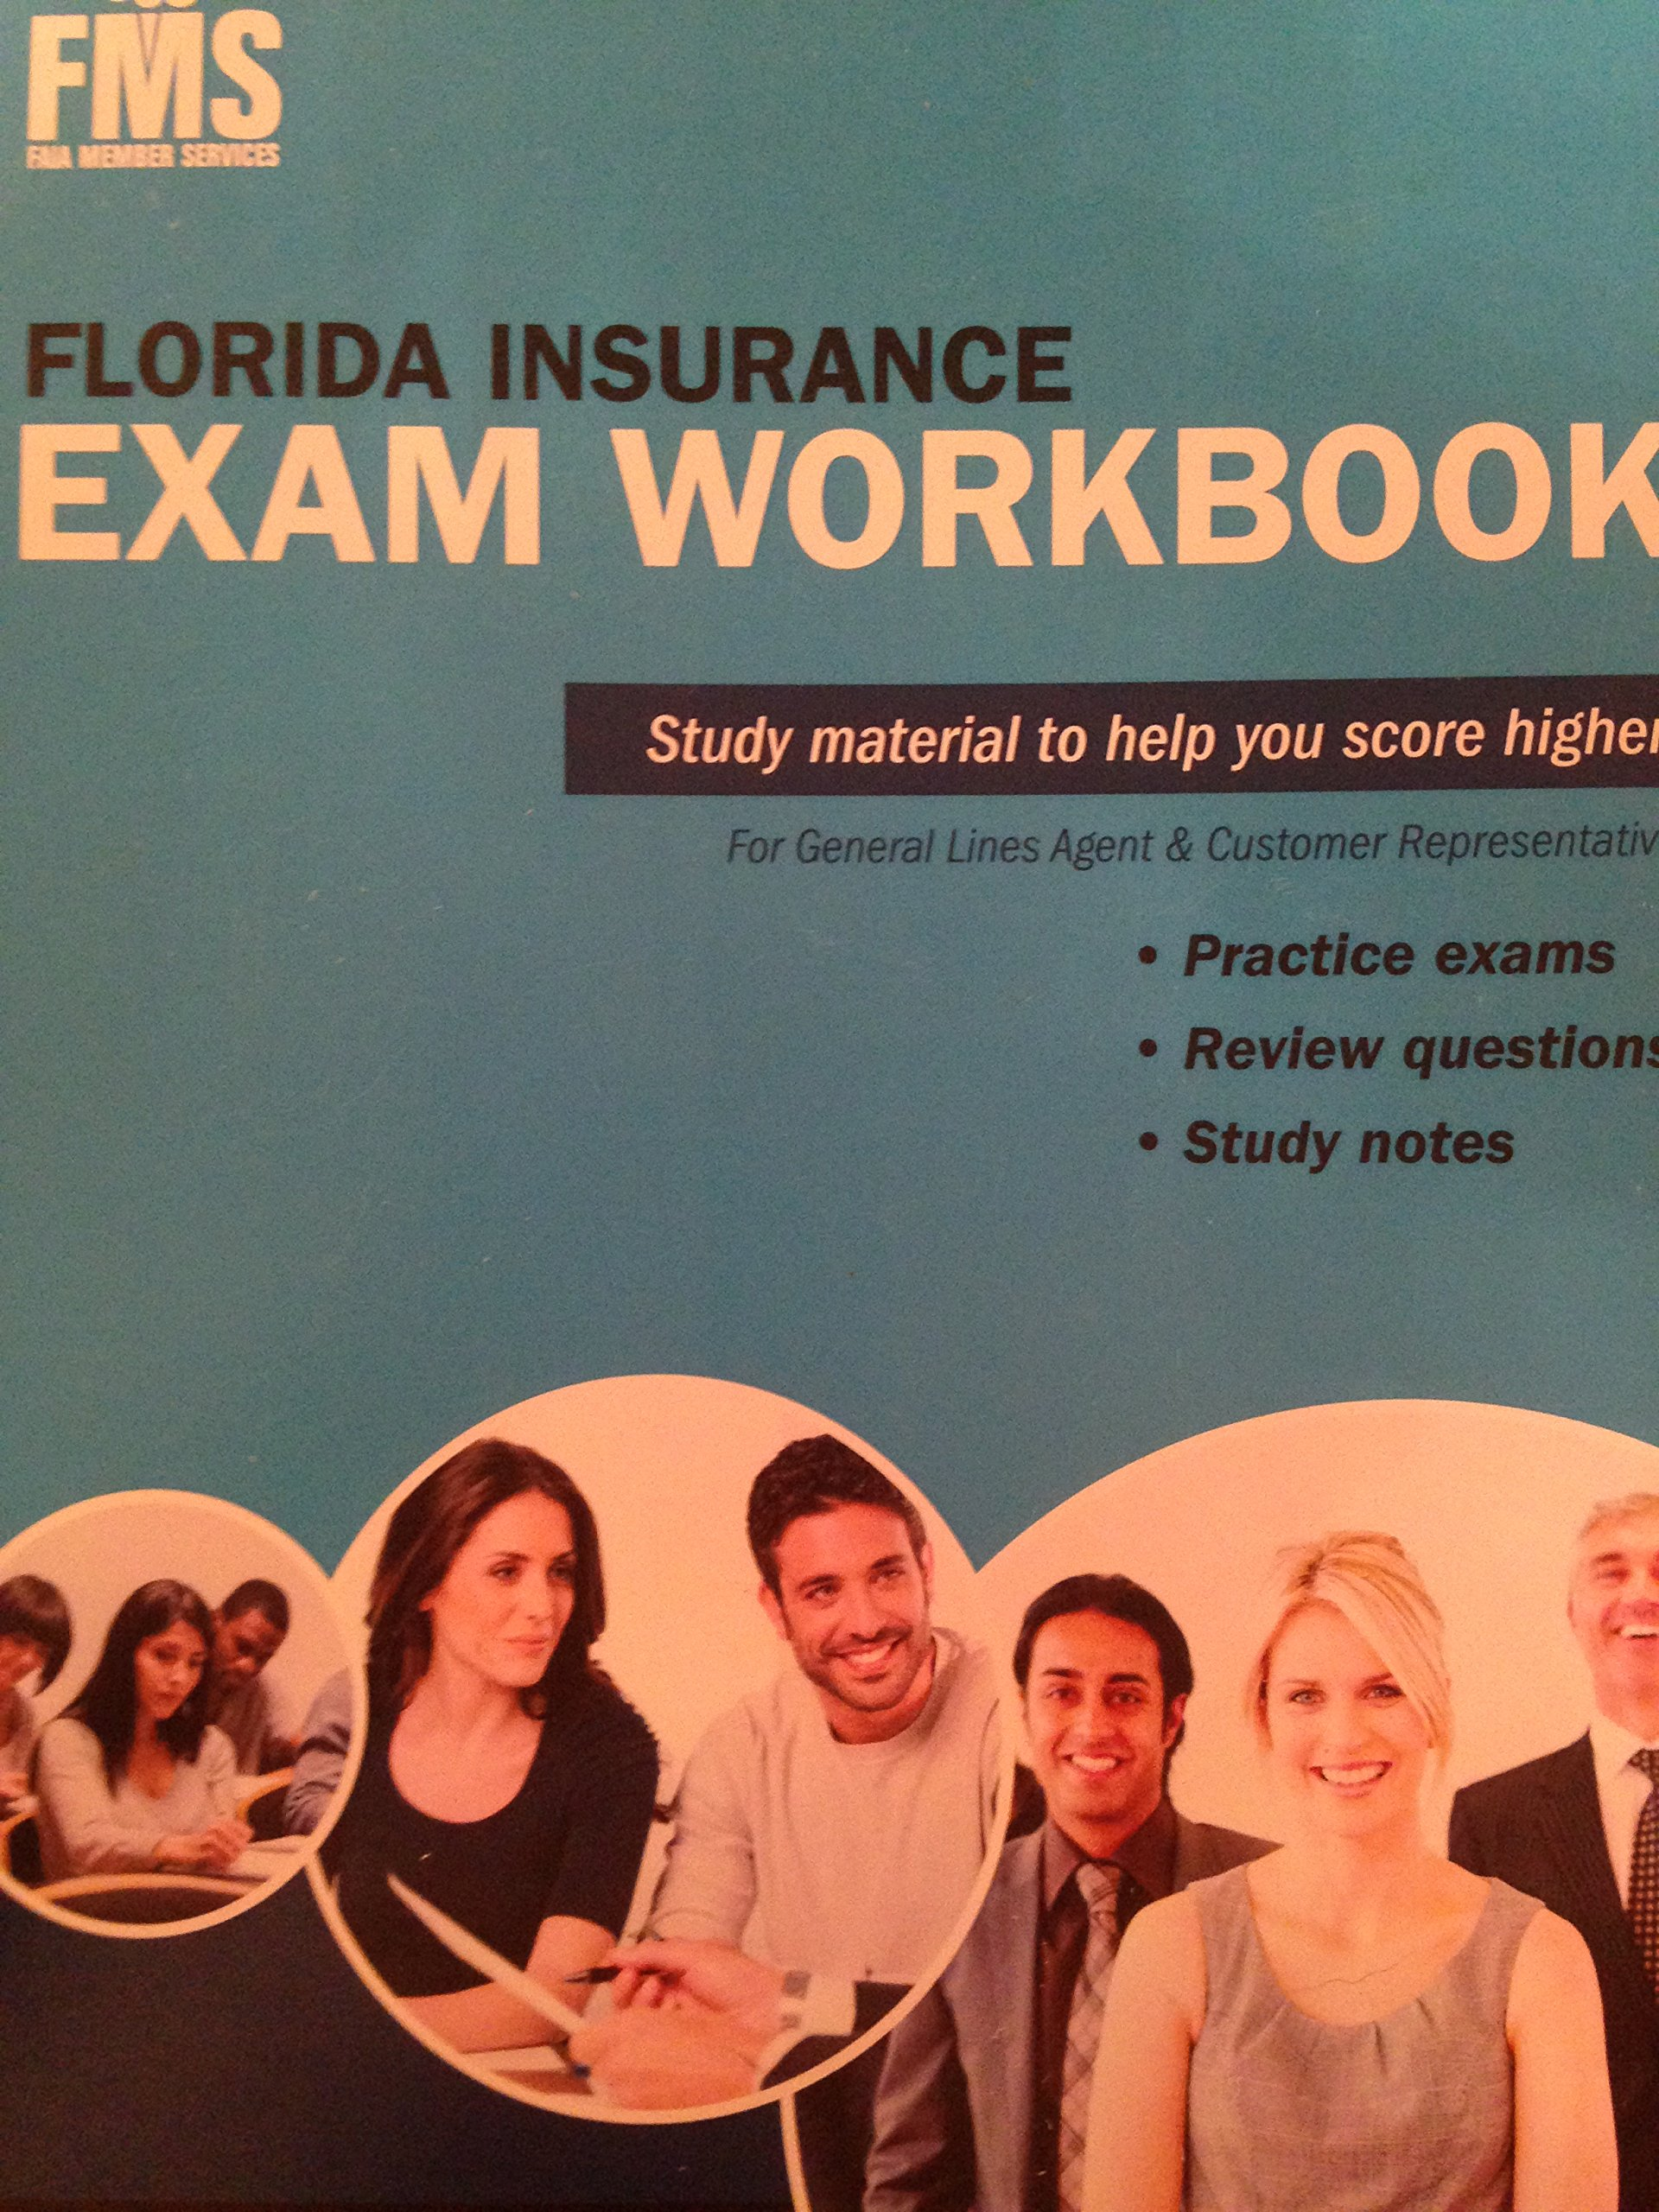 Florida General Lines Agent & Customer Rep Study Manual 23rd Edition: FAIA  Memeber Services: 9788888898902: Amazon.com: Books